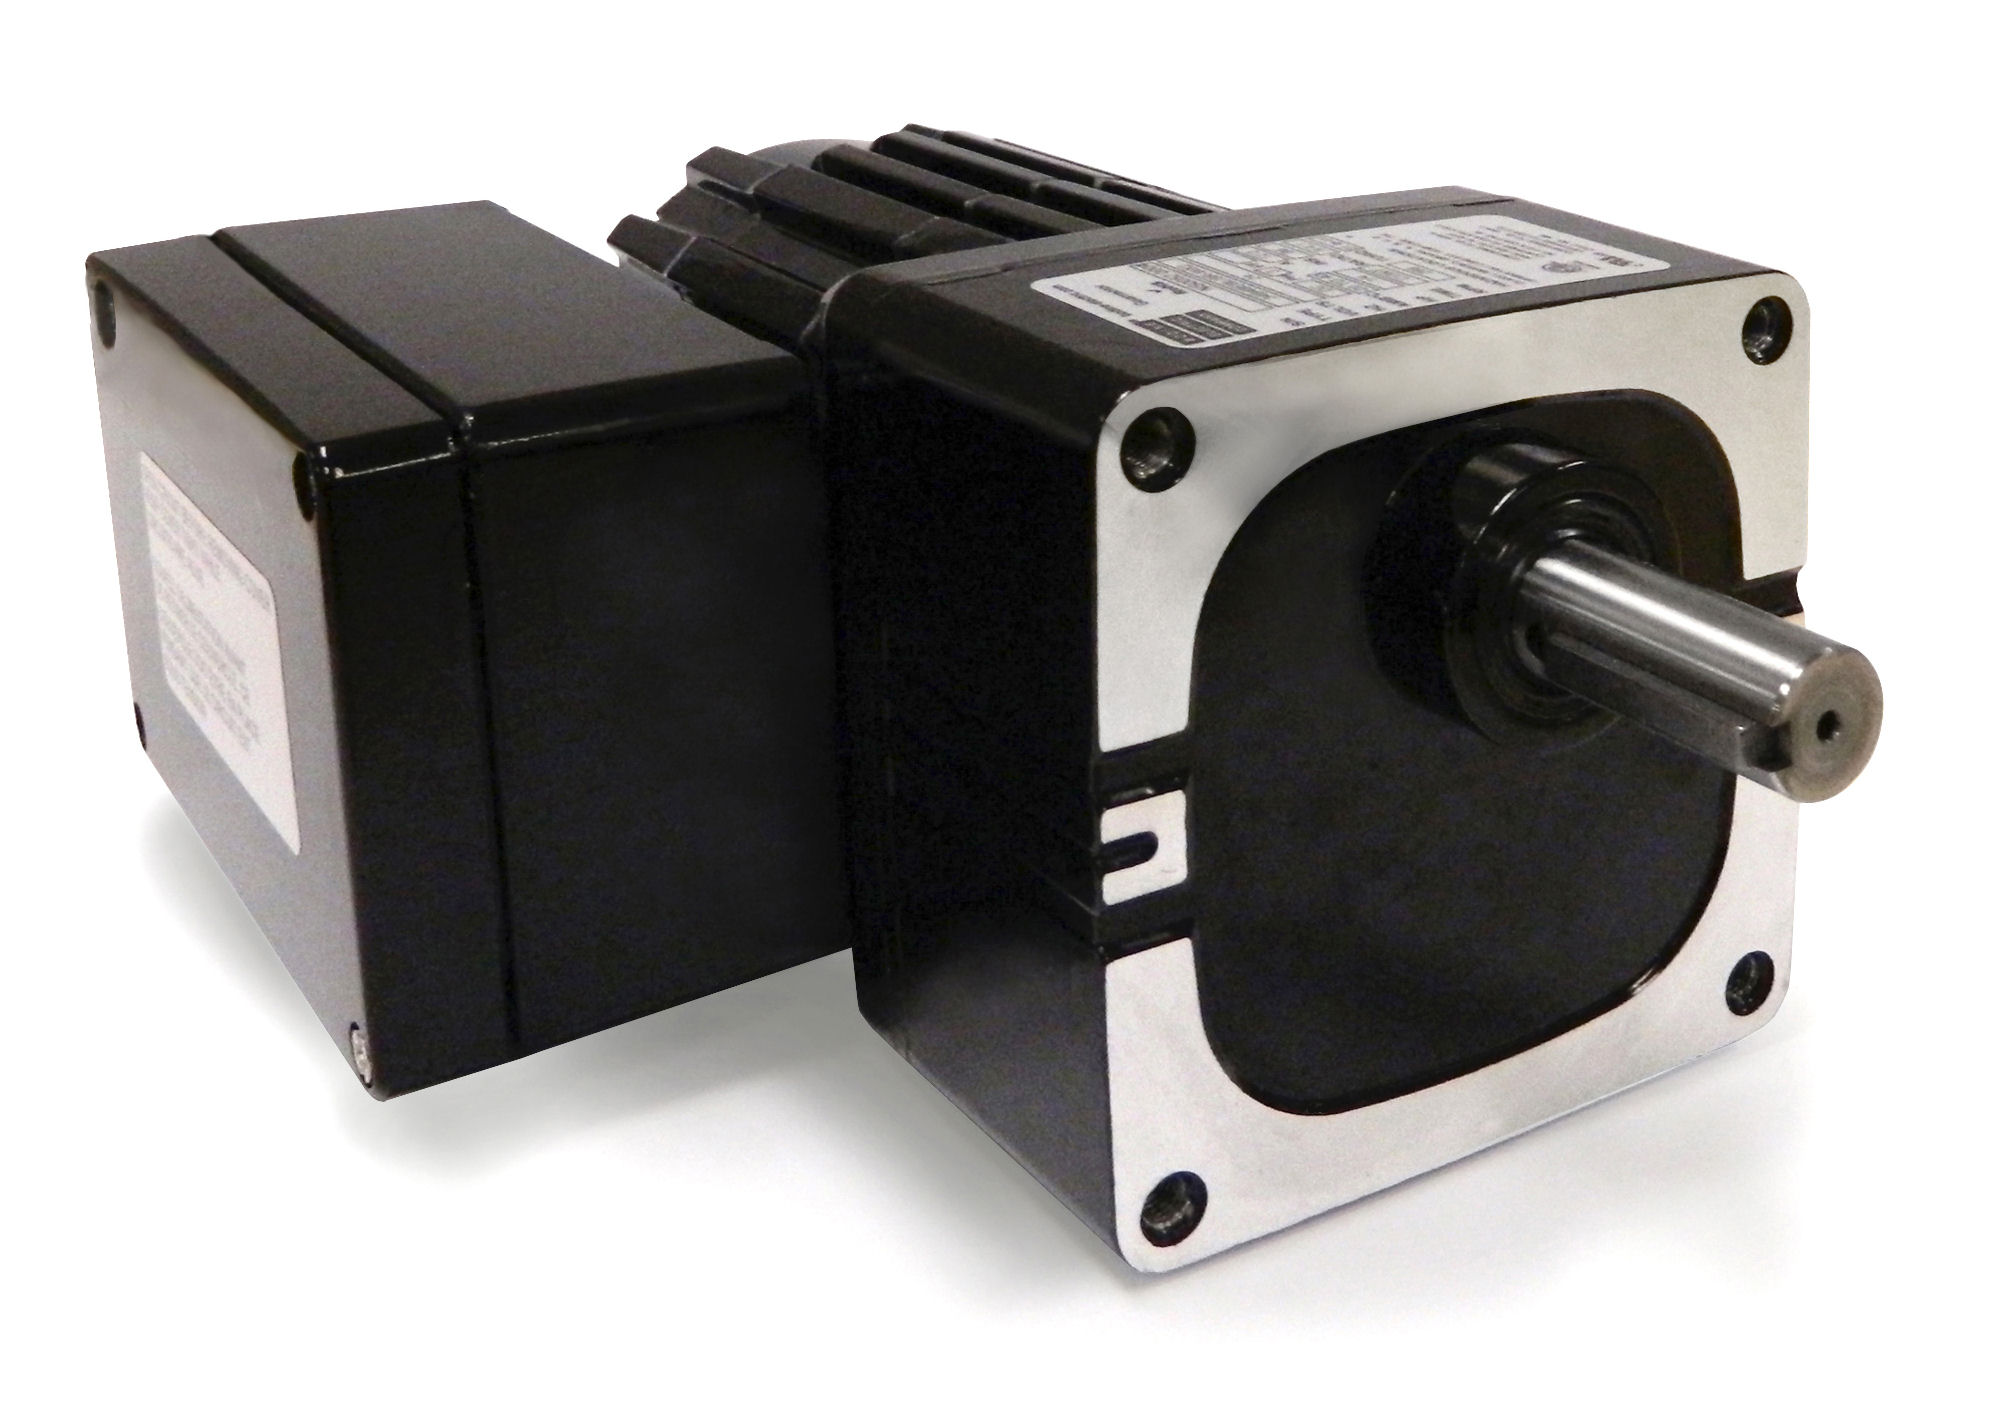 Bodine 34B-WX Gearmotors Now Comply with Class I, Division 2 Standards for Use in Hazardous Locations